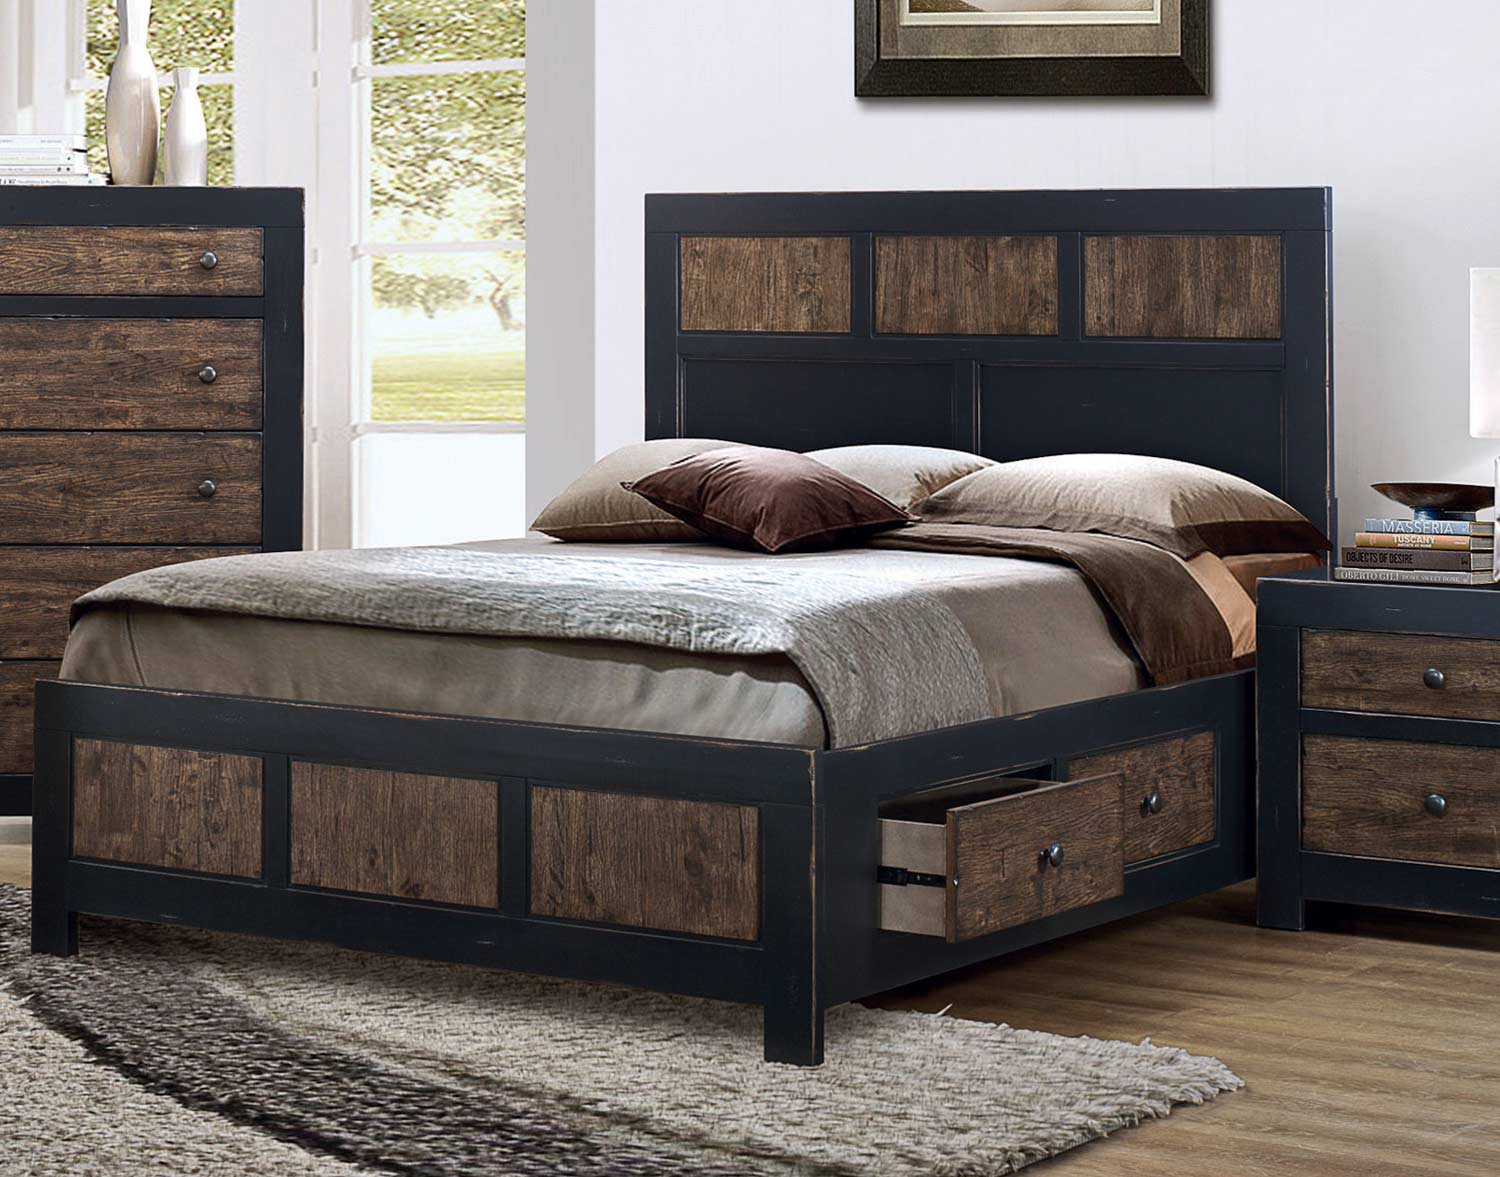 Coaster Segundo Storage Platform Bed - Antique Oak Embossed/Sand-through Black